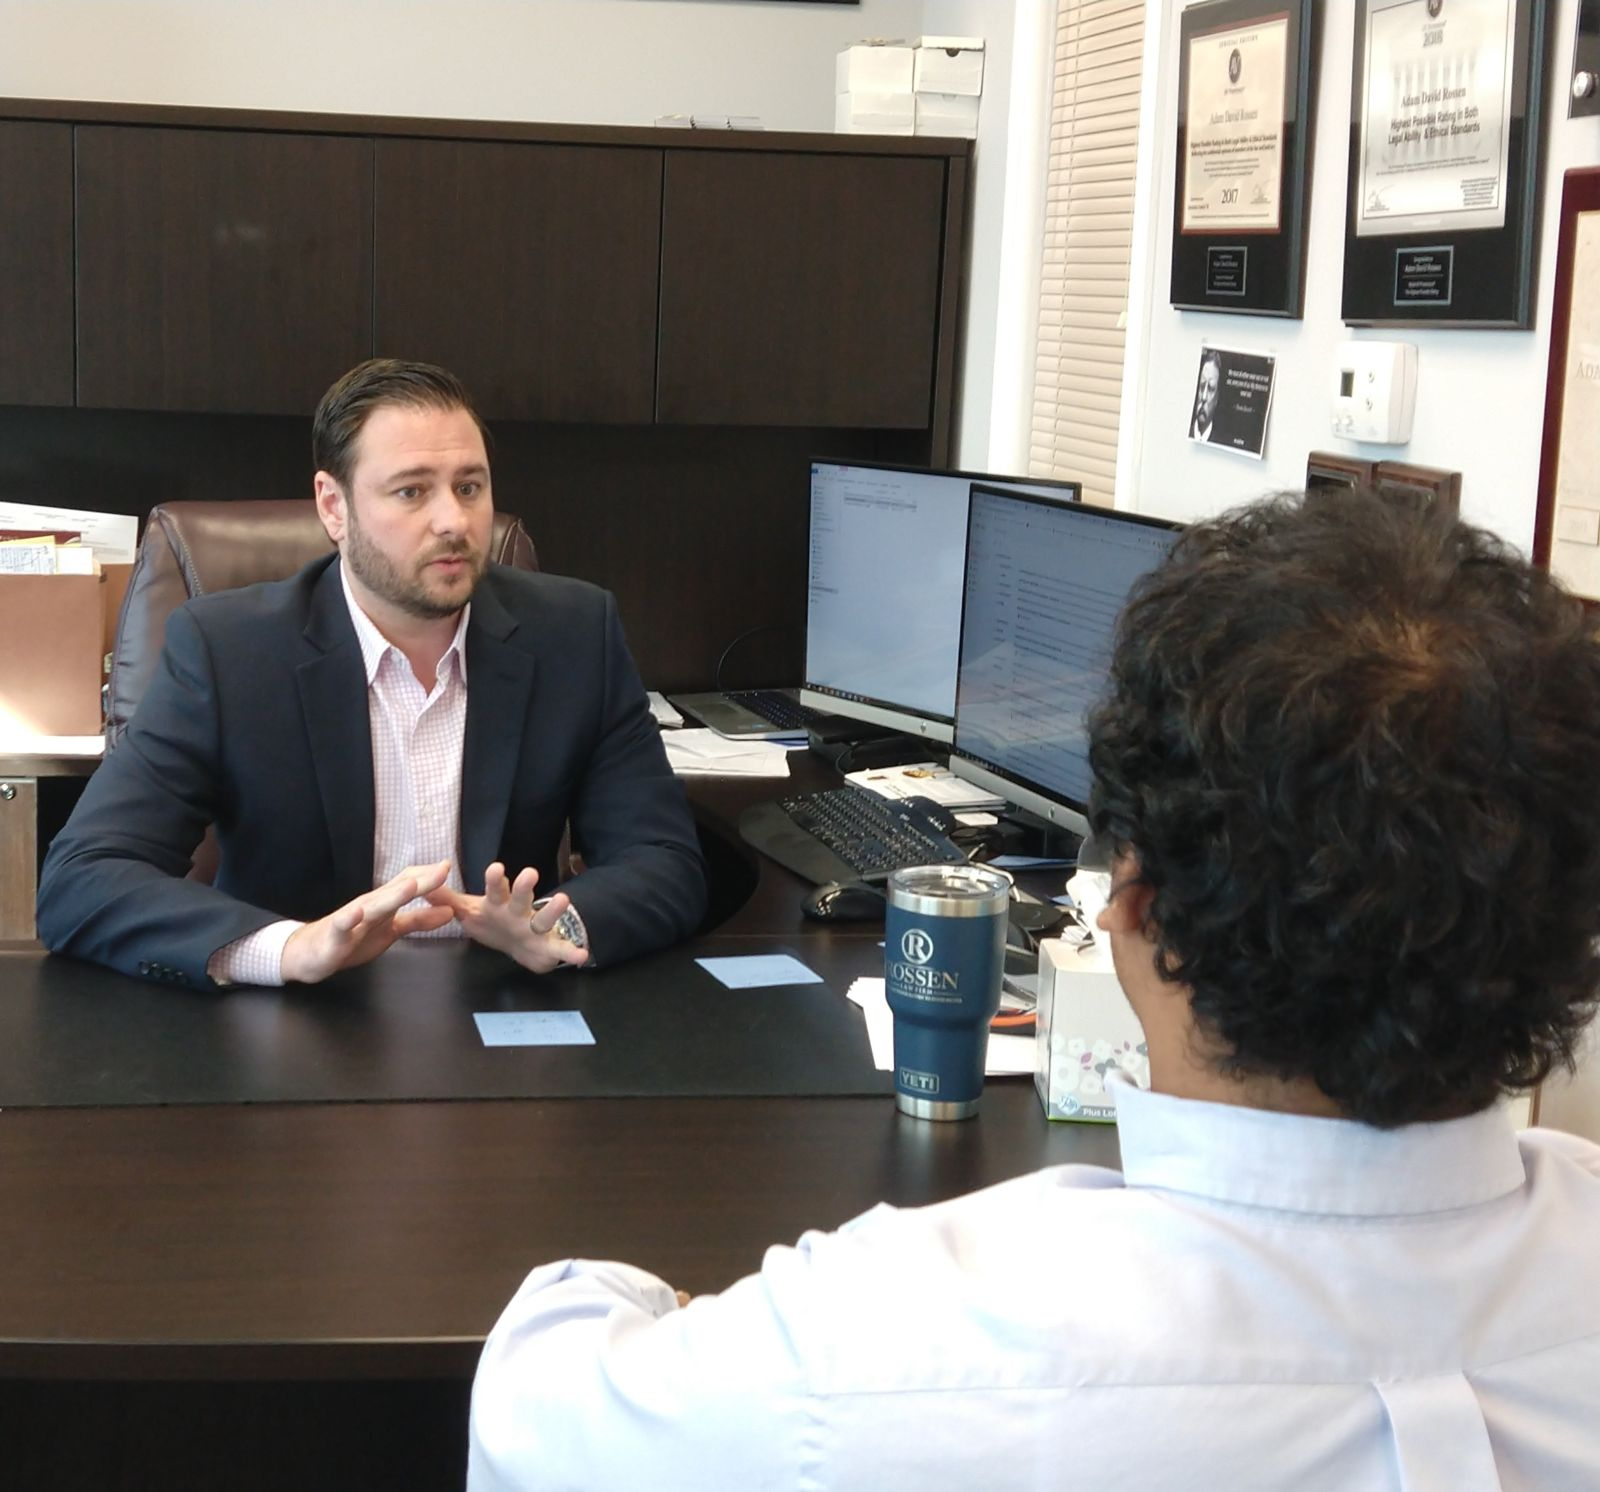 Adam Rossen at the Rossen law firm speaks with a client in his criminal defense law firm office in Fort Lauderdale during a free strategy session